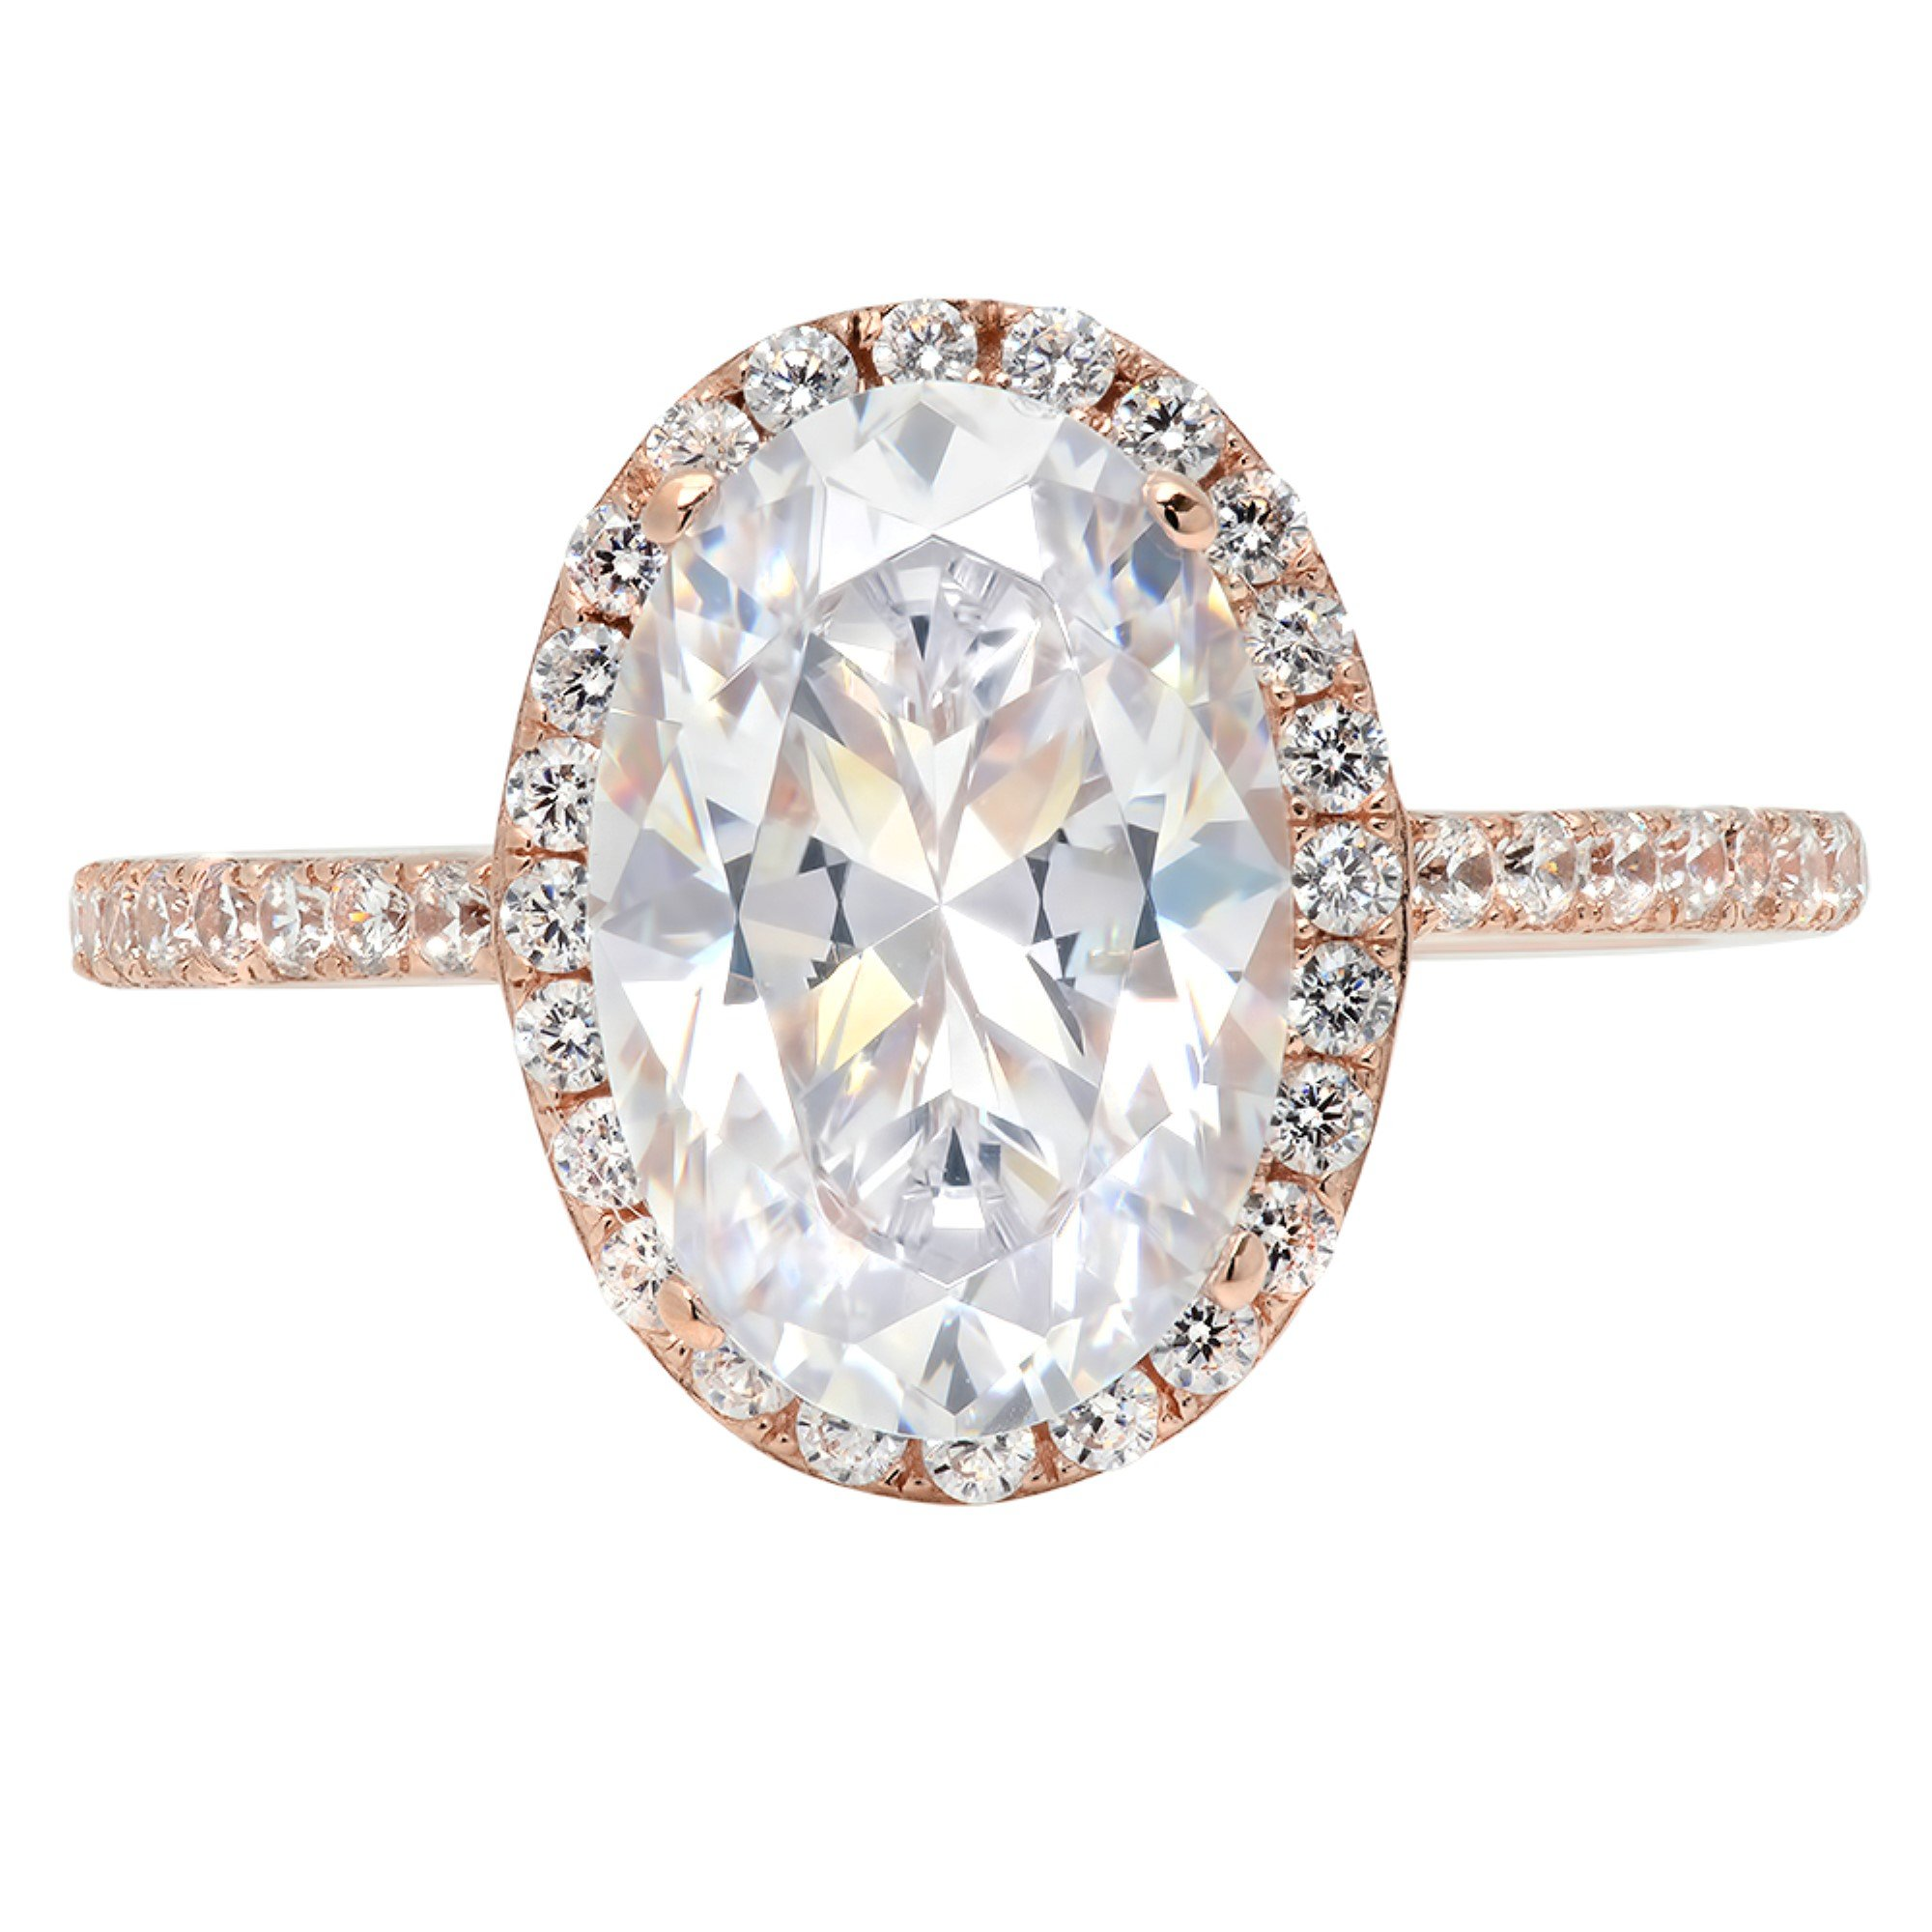 3.28ct Brilliant Oval Cut Halo Statement Wedding Anniversary Engagement Bridal Ring 14k Rose Gold, 9.25